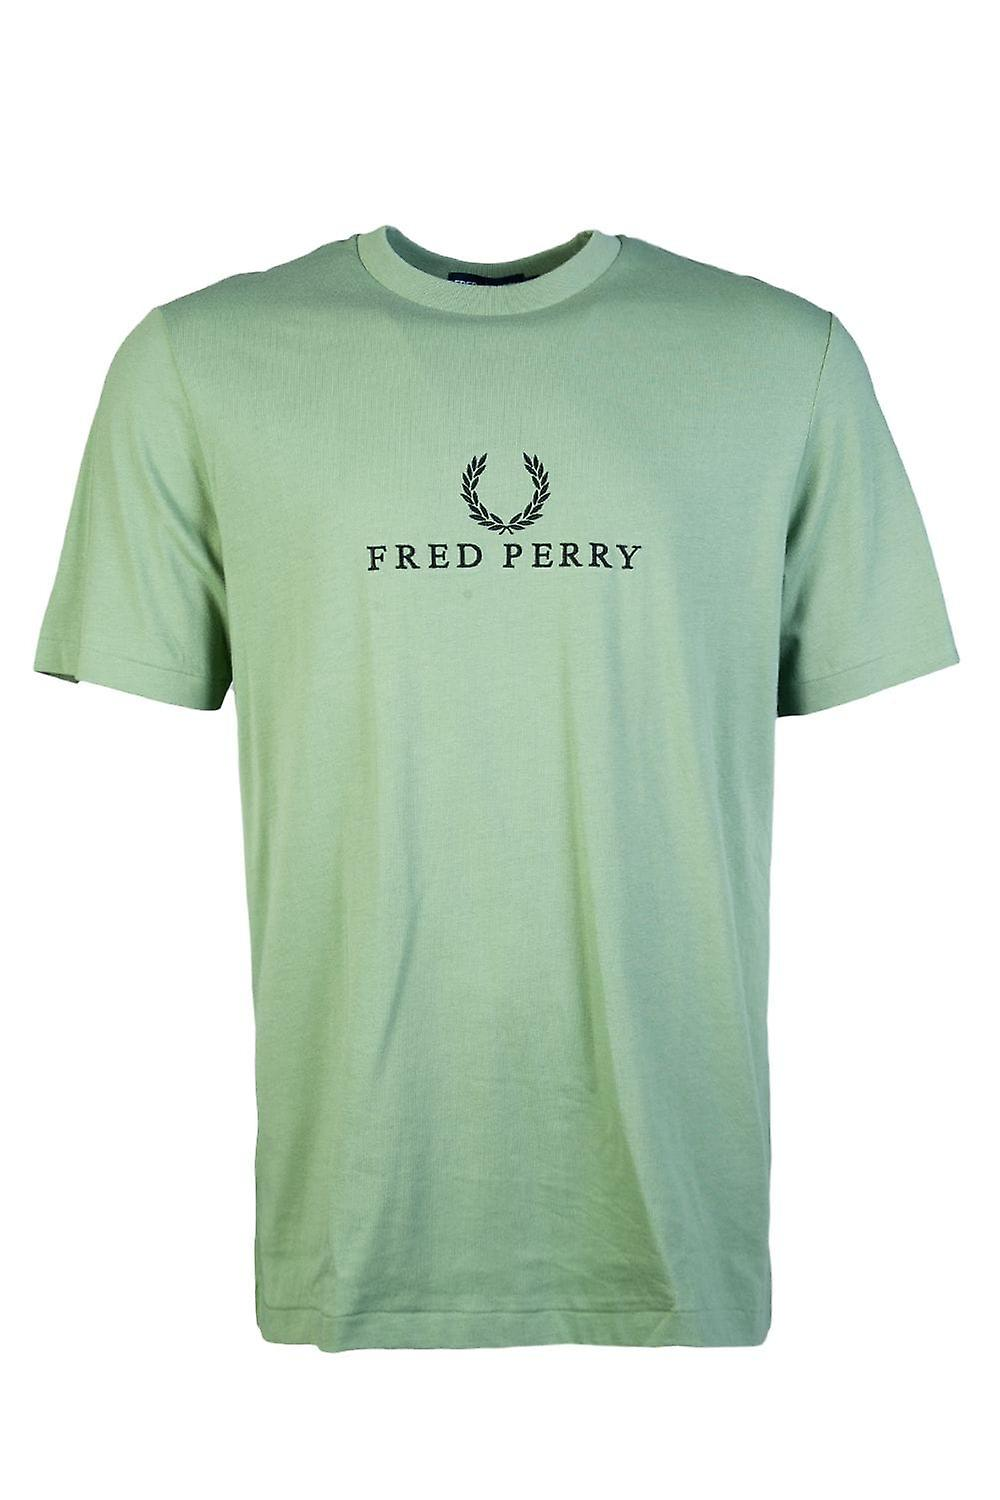 Fred Perry Round Neck T Shirt M4520